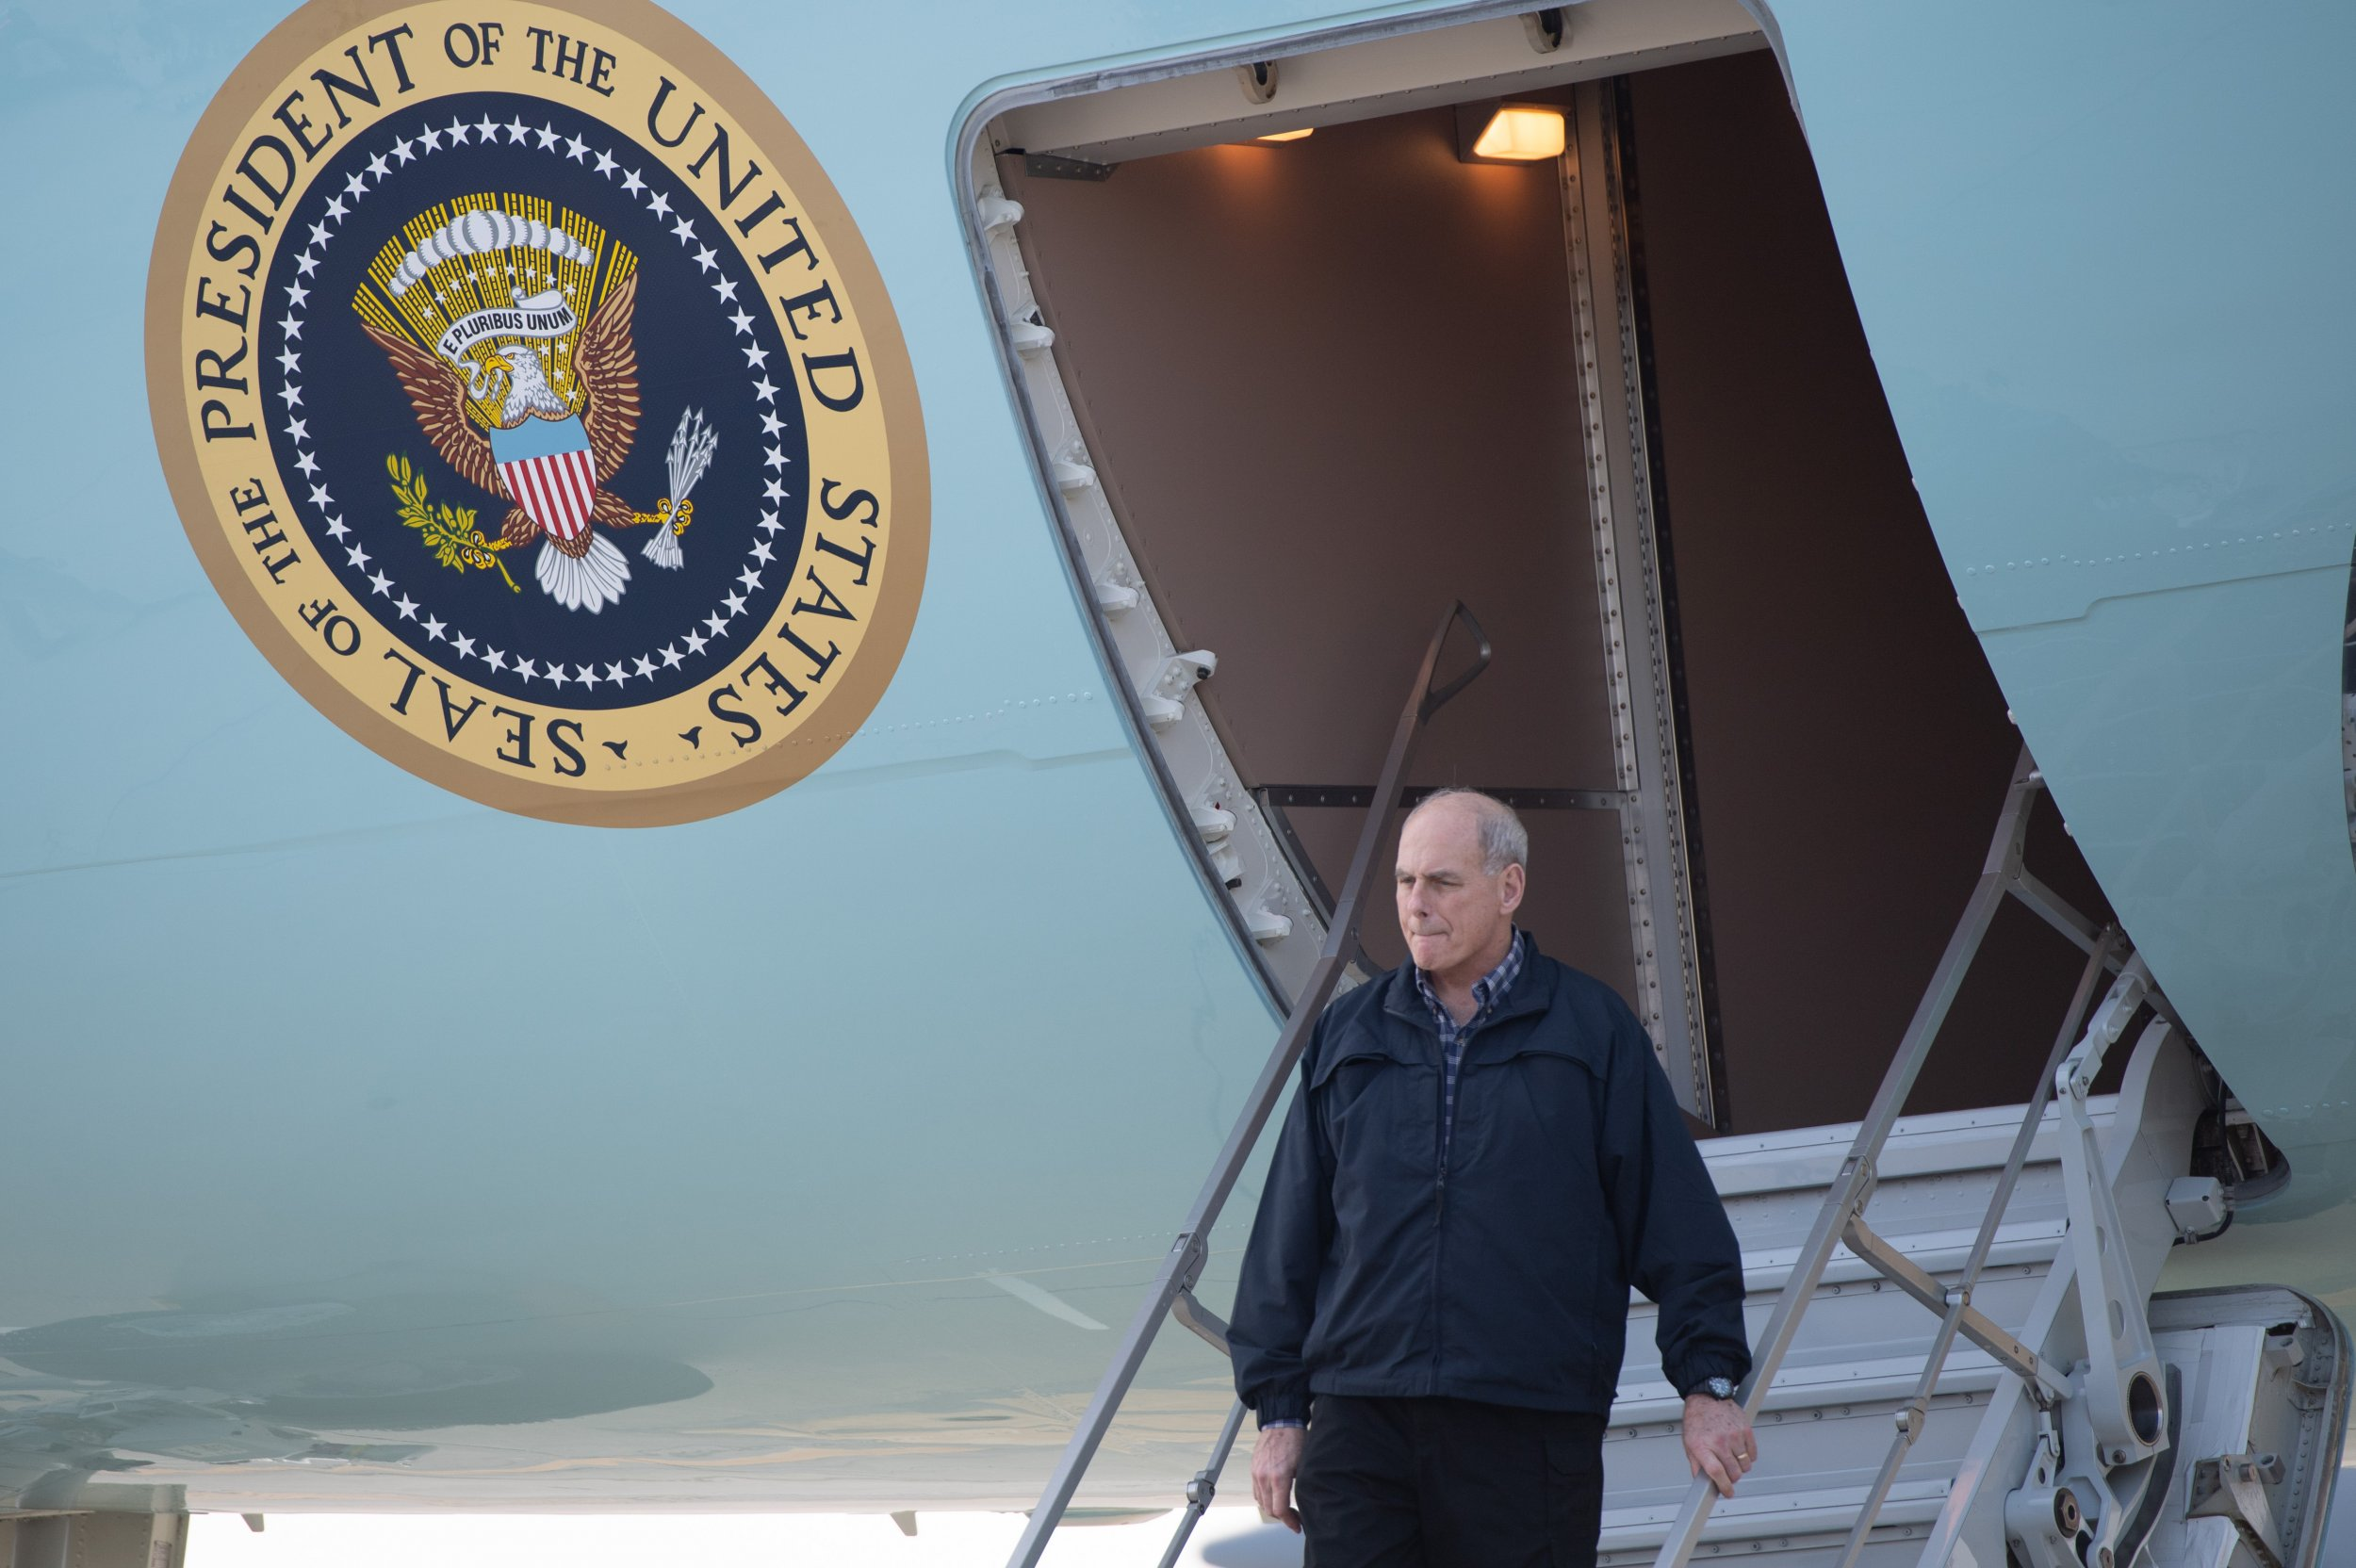 John Kelly, White House Chief of Staff